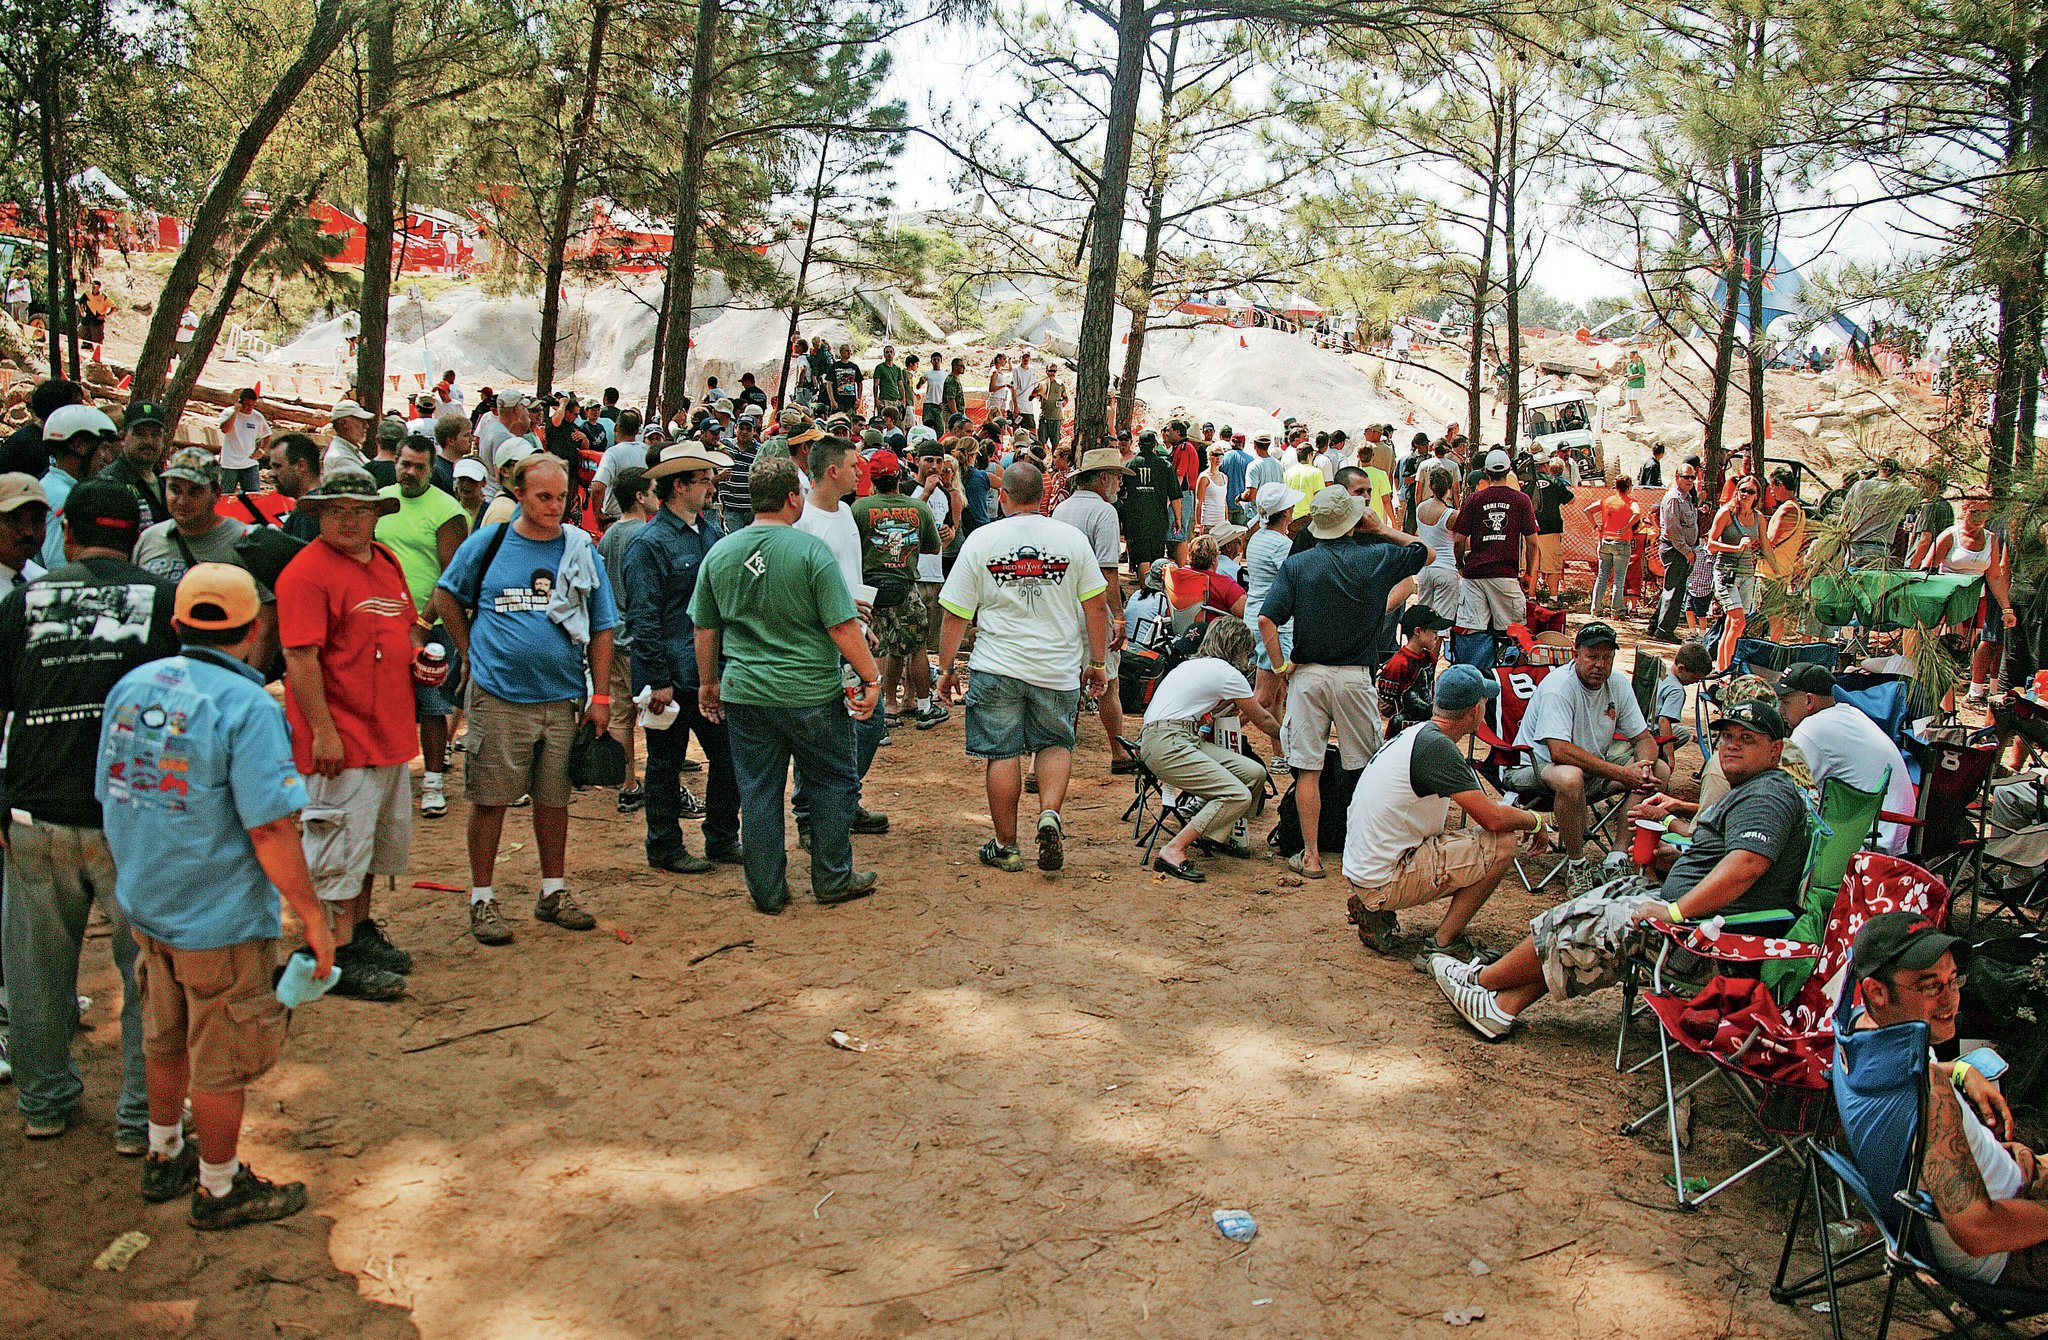 Rockcrawling competitions have seen big crowds in the past, but the past few years have been bleak. Jesse has some ideas on how to get spectators back cheering on their favorite rockcrawlers.